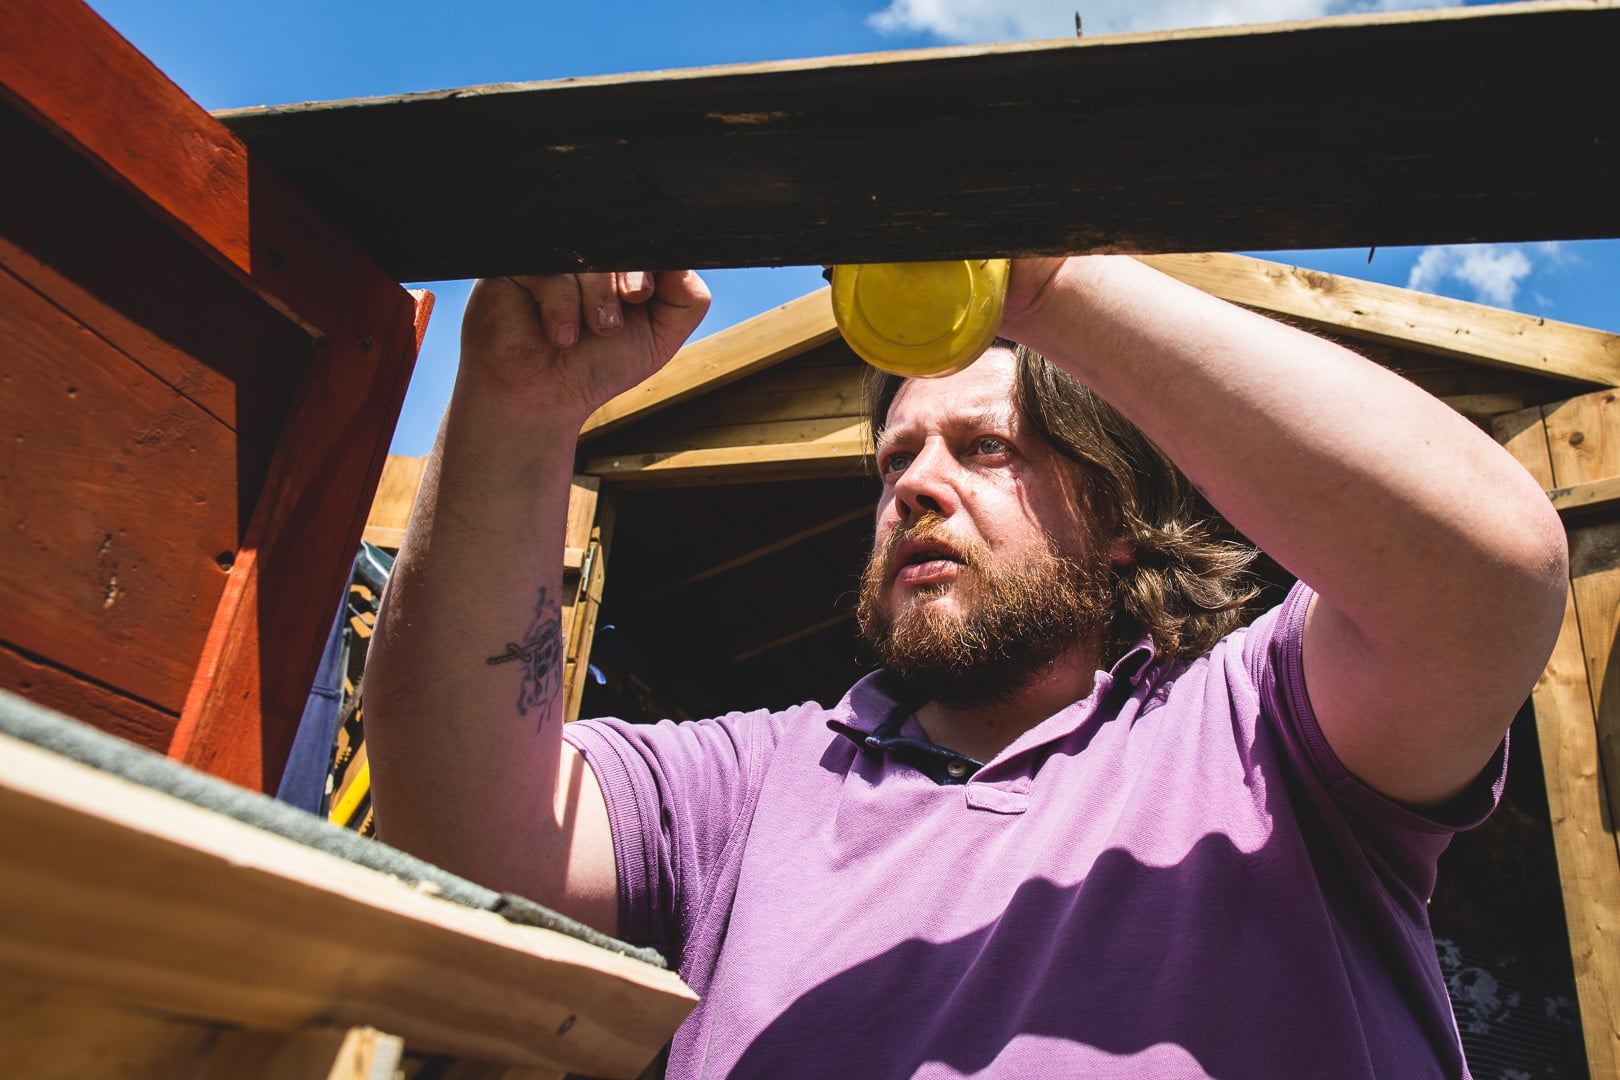 A member of the abbey physic garden building a chicken coop, photographed by Simon Hawkins Pictures in Faversham